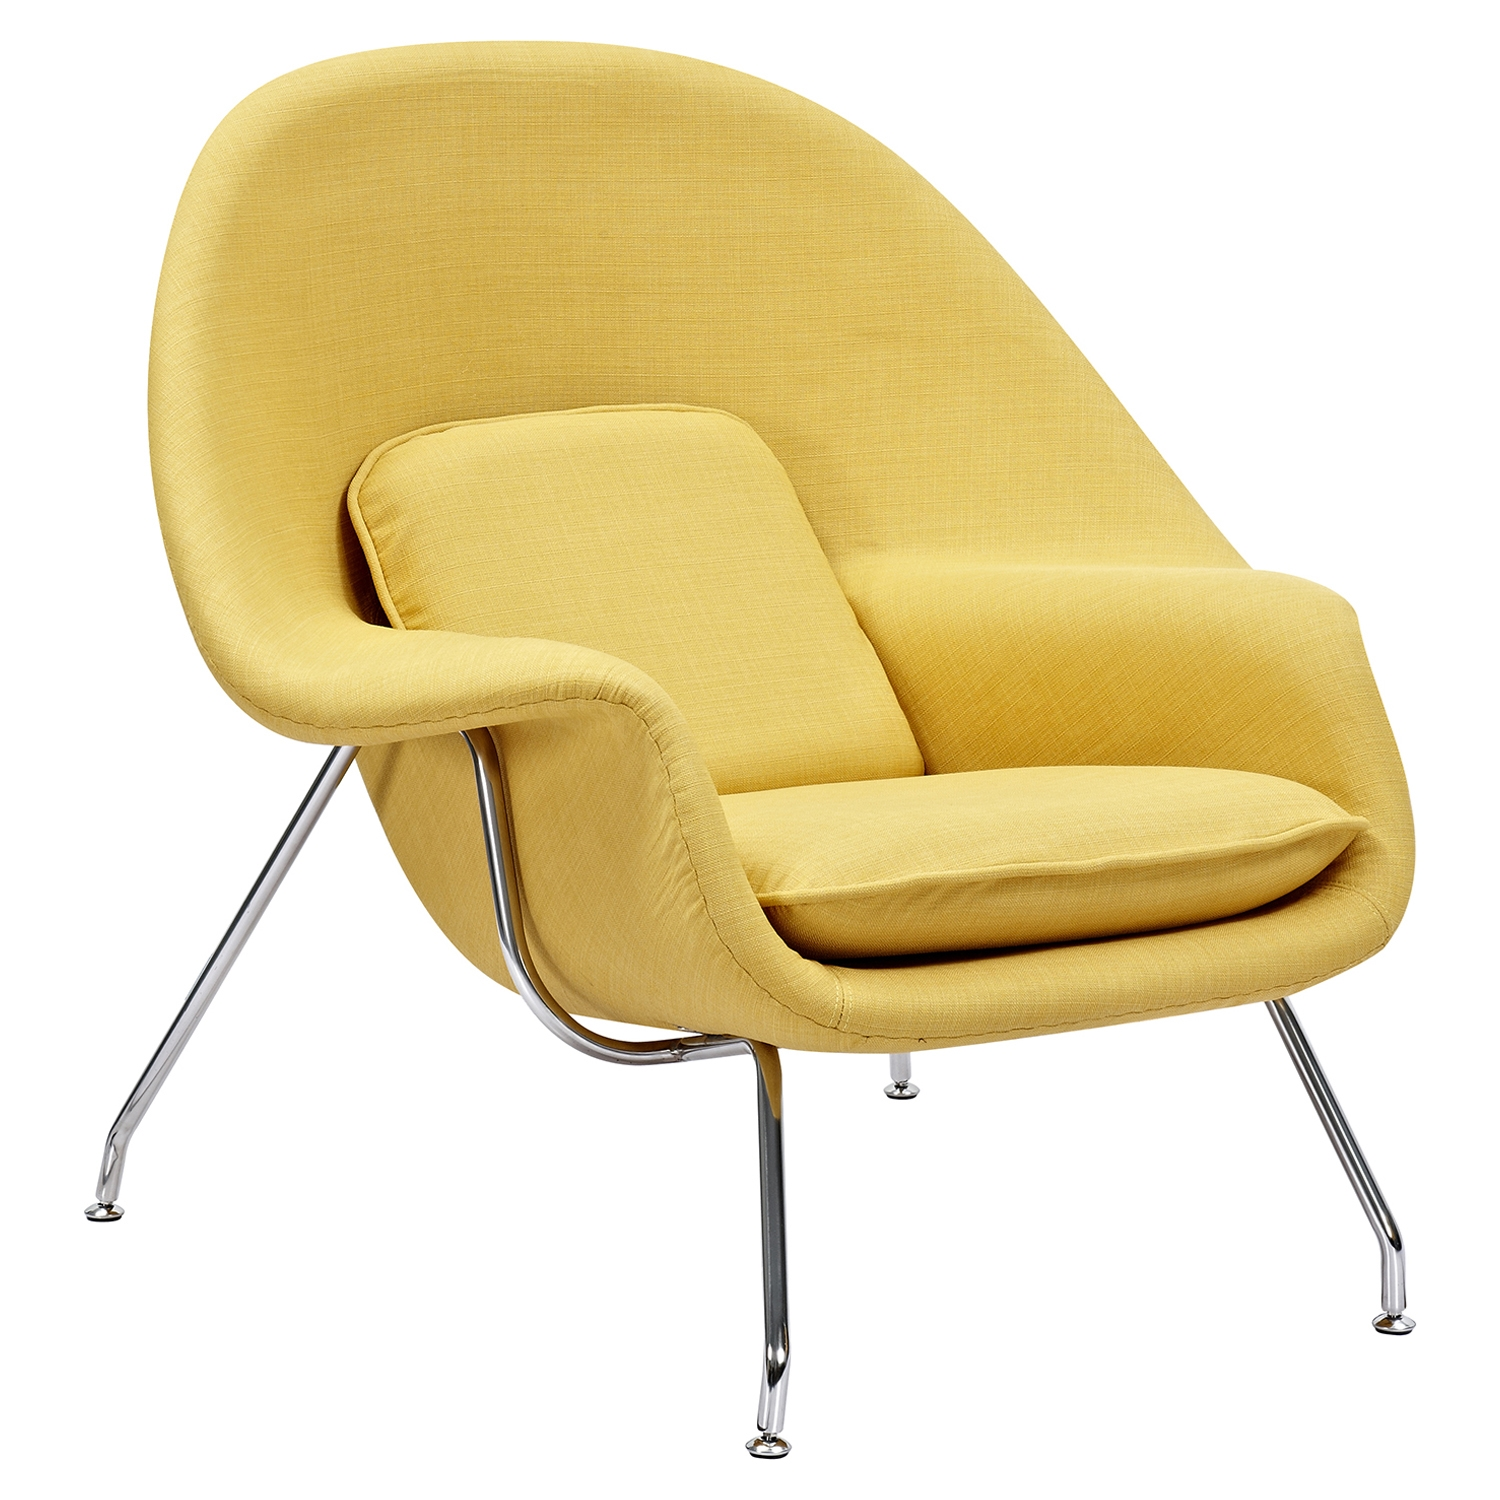 Saro Upholstered Chair - Papaya Yellow - NYEK-225504